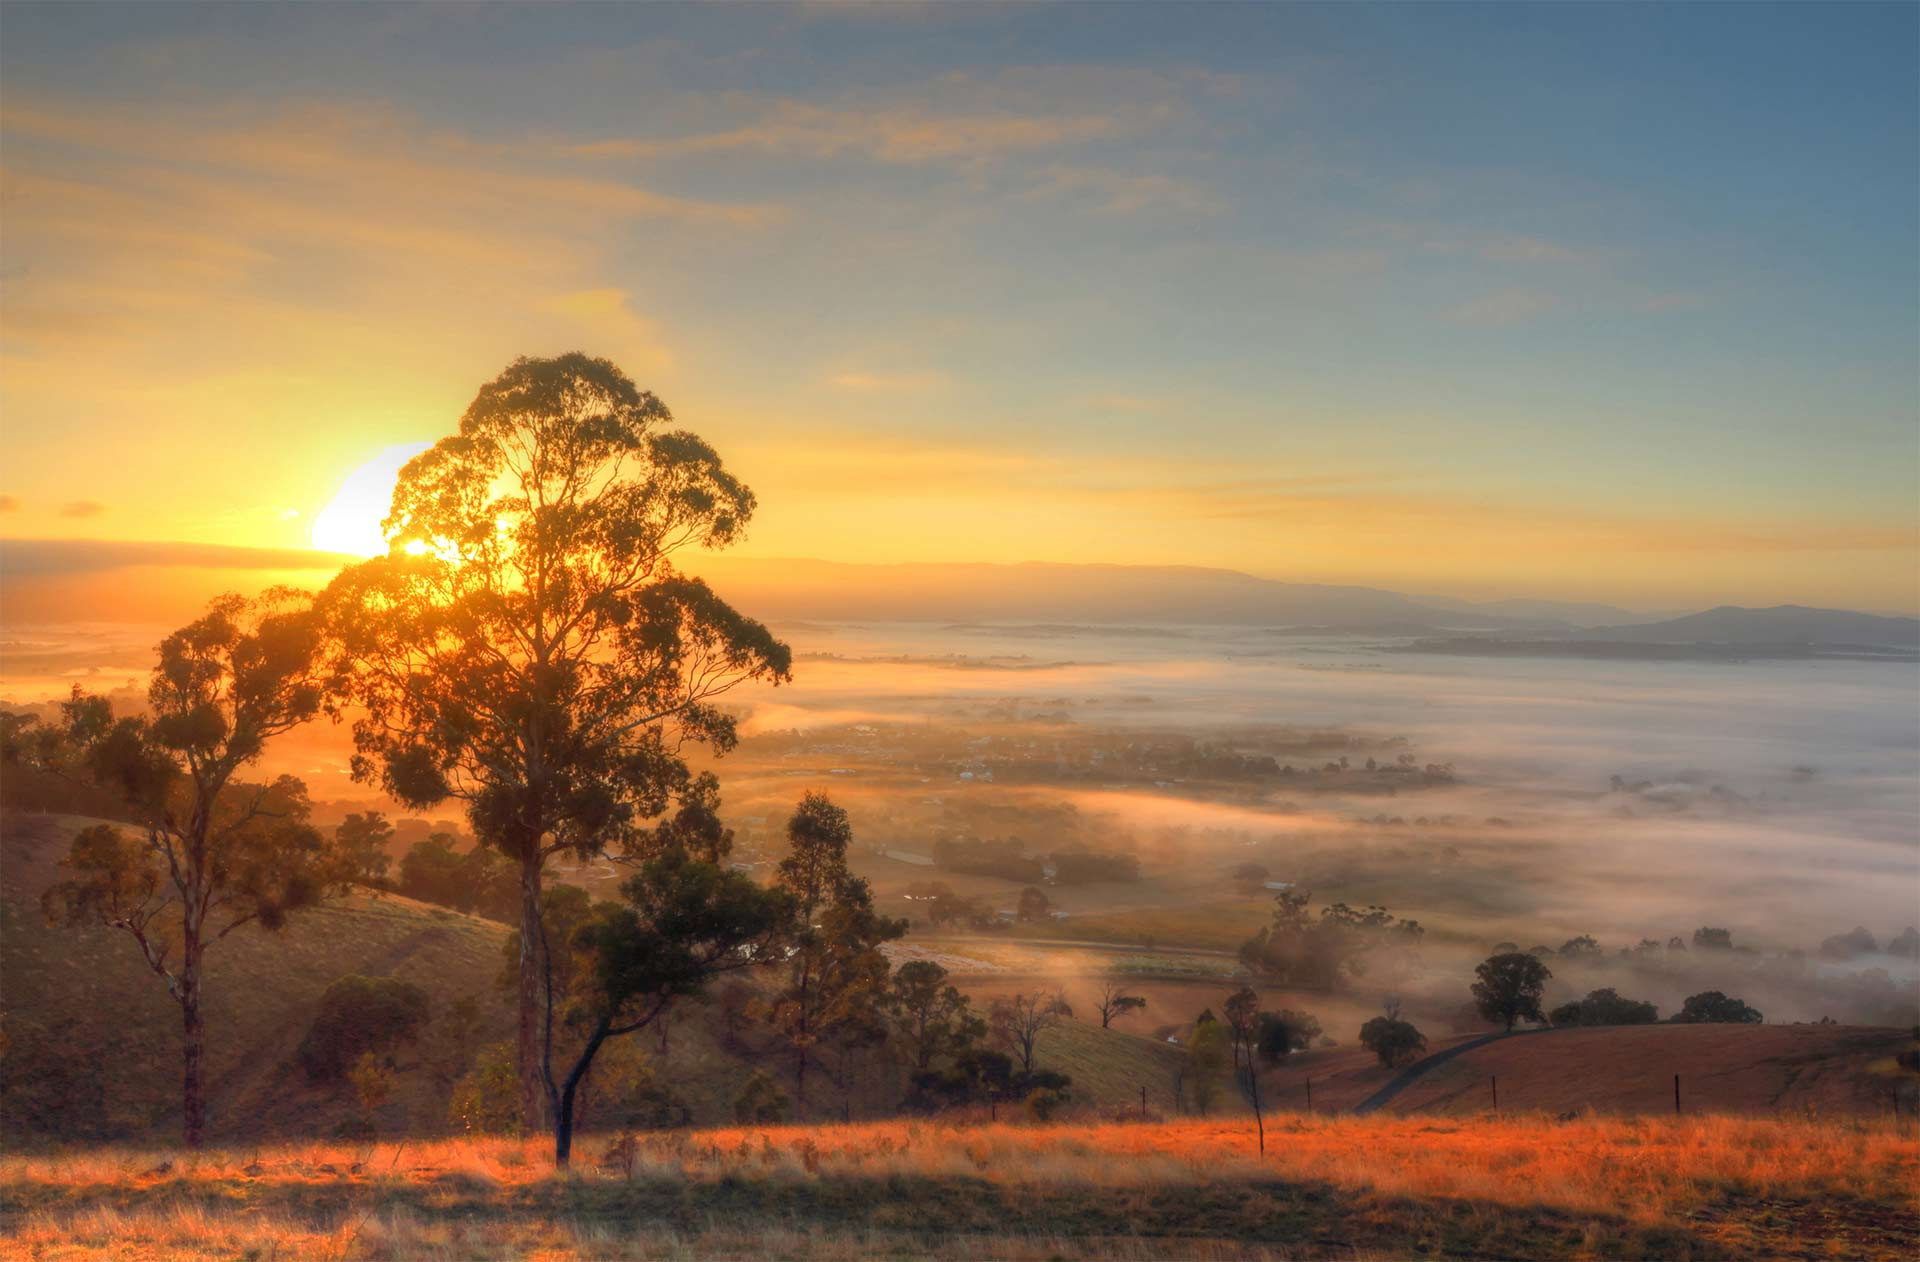 Sunrise over the Yarra Valley - Source image